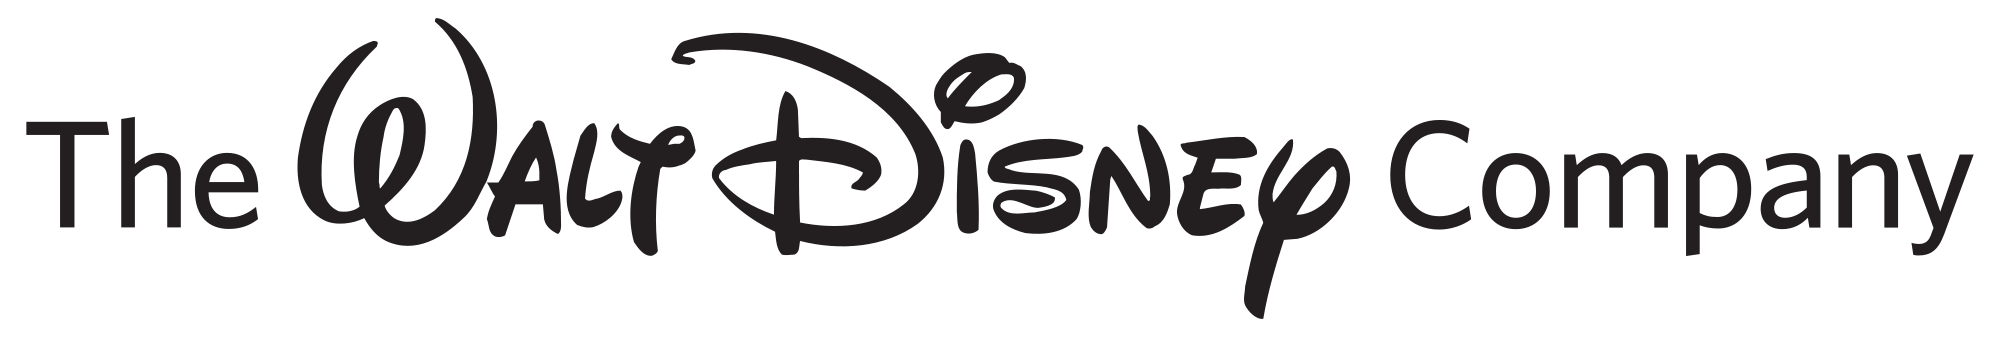 the walt disney company Timeline of events in the history of walt disney's entertainment companies,  including films and theme parks.